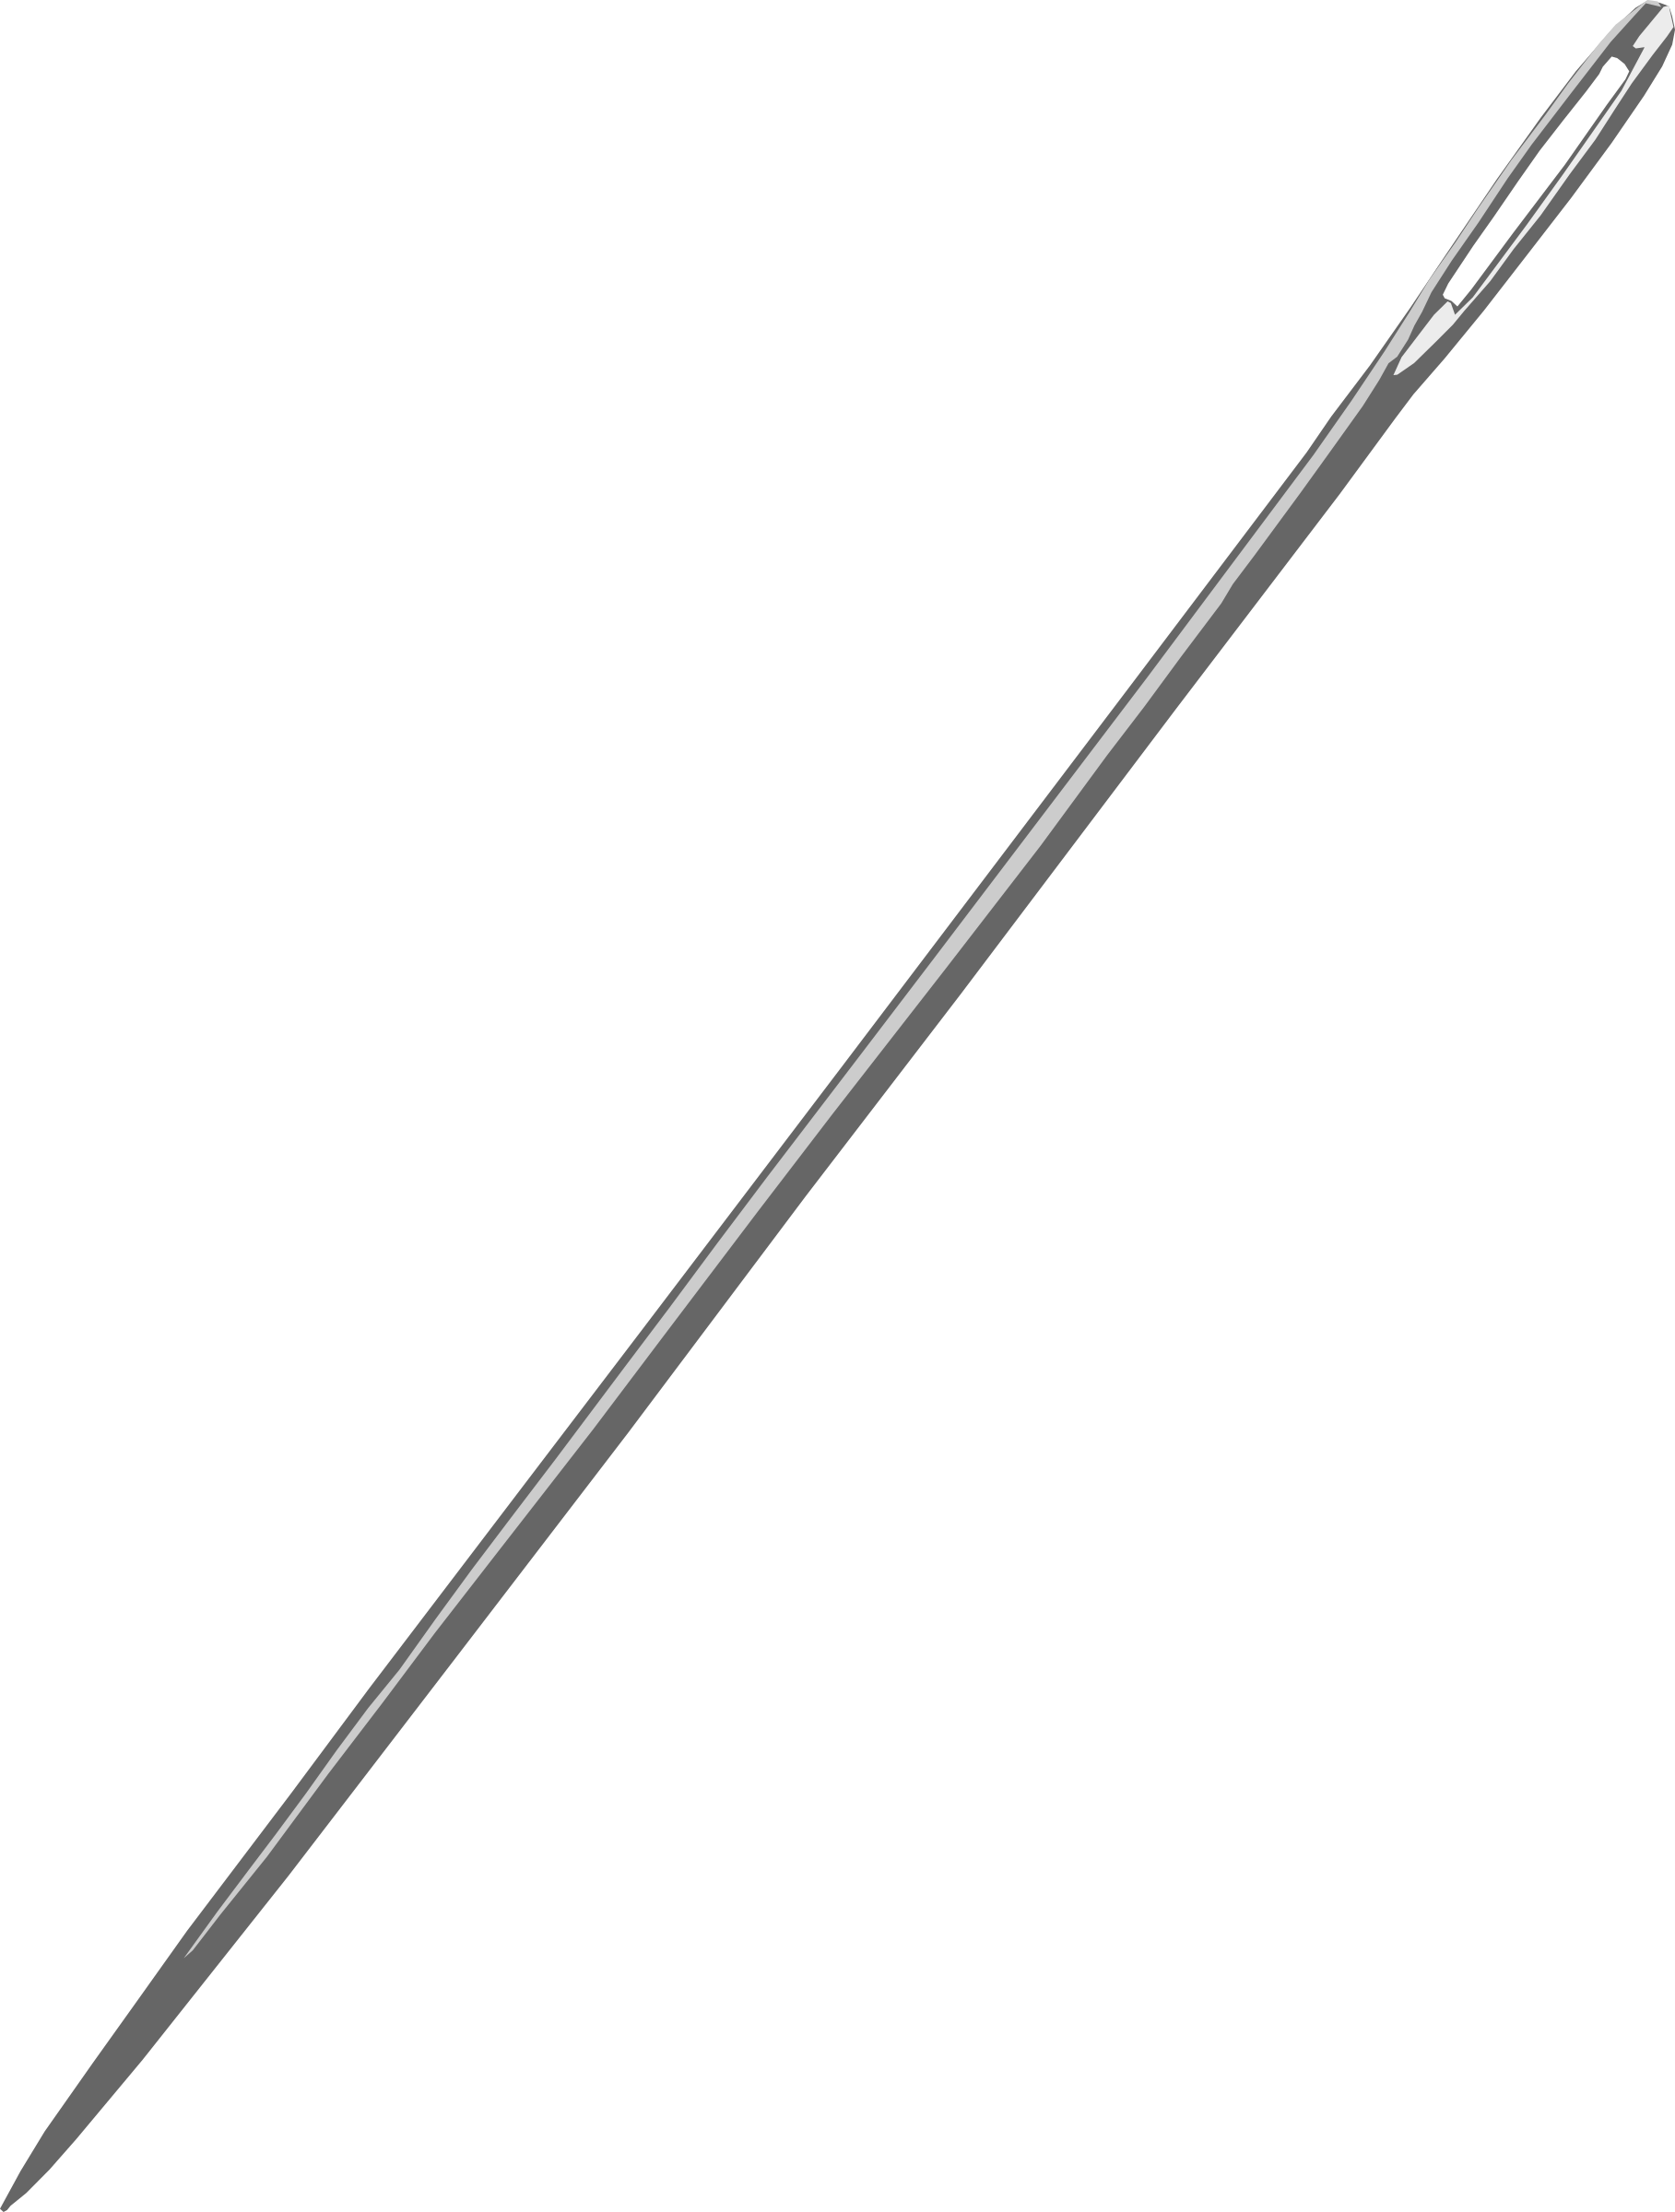 Sewing needle PNG - Sewing Needle PNG HD